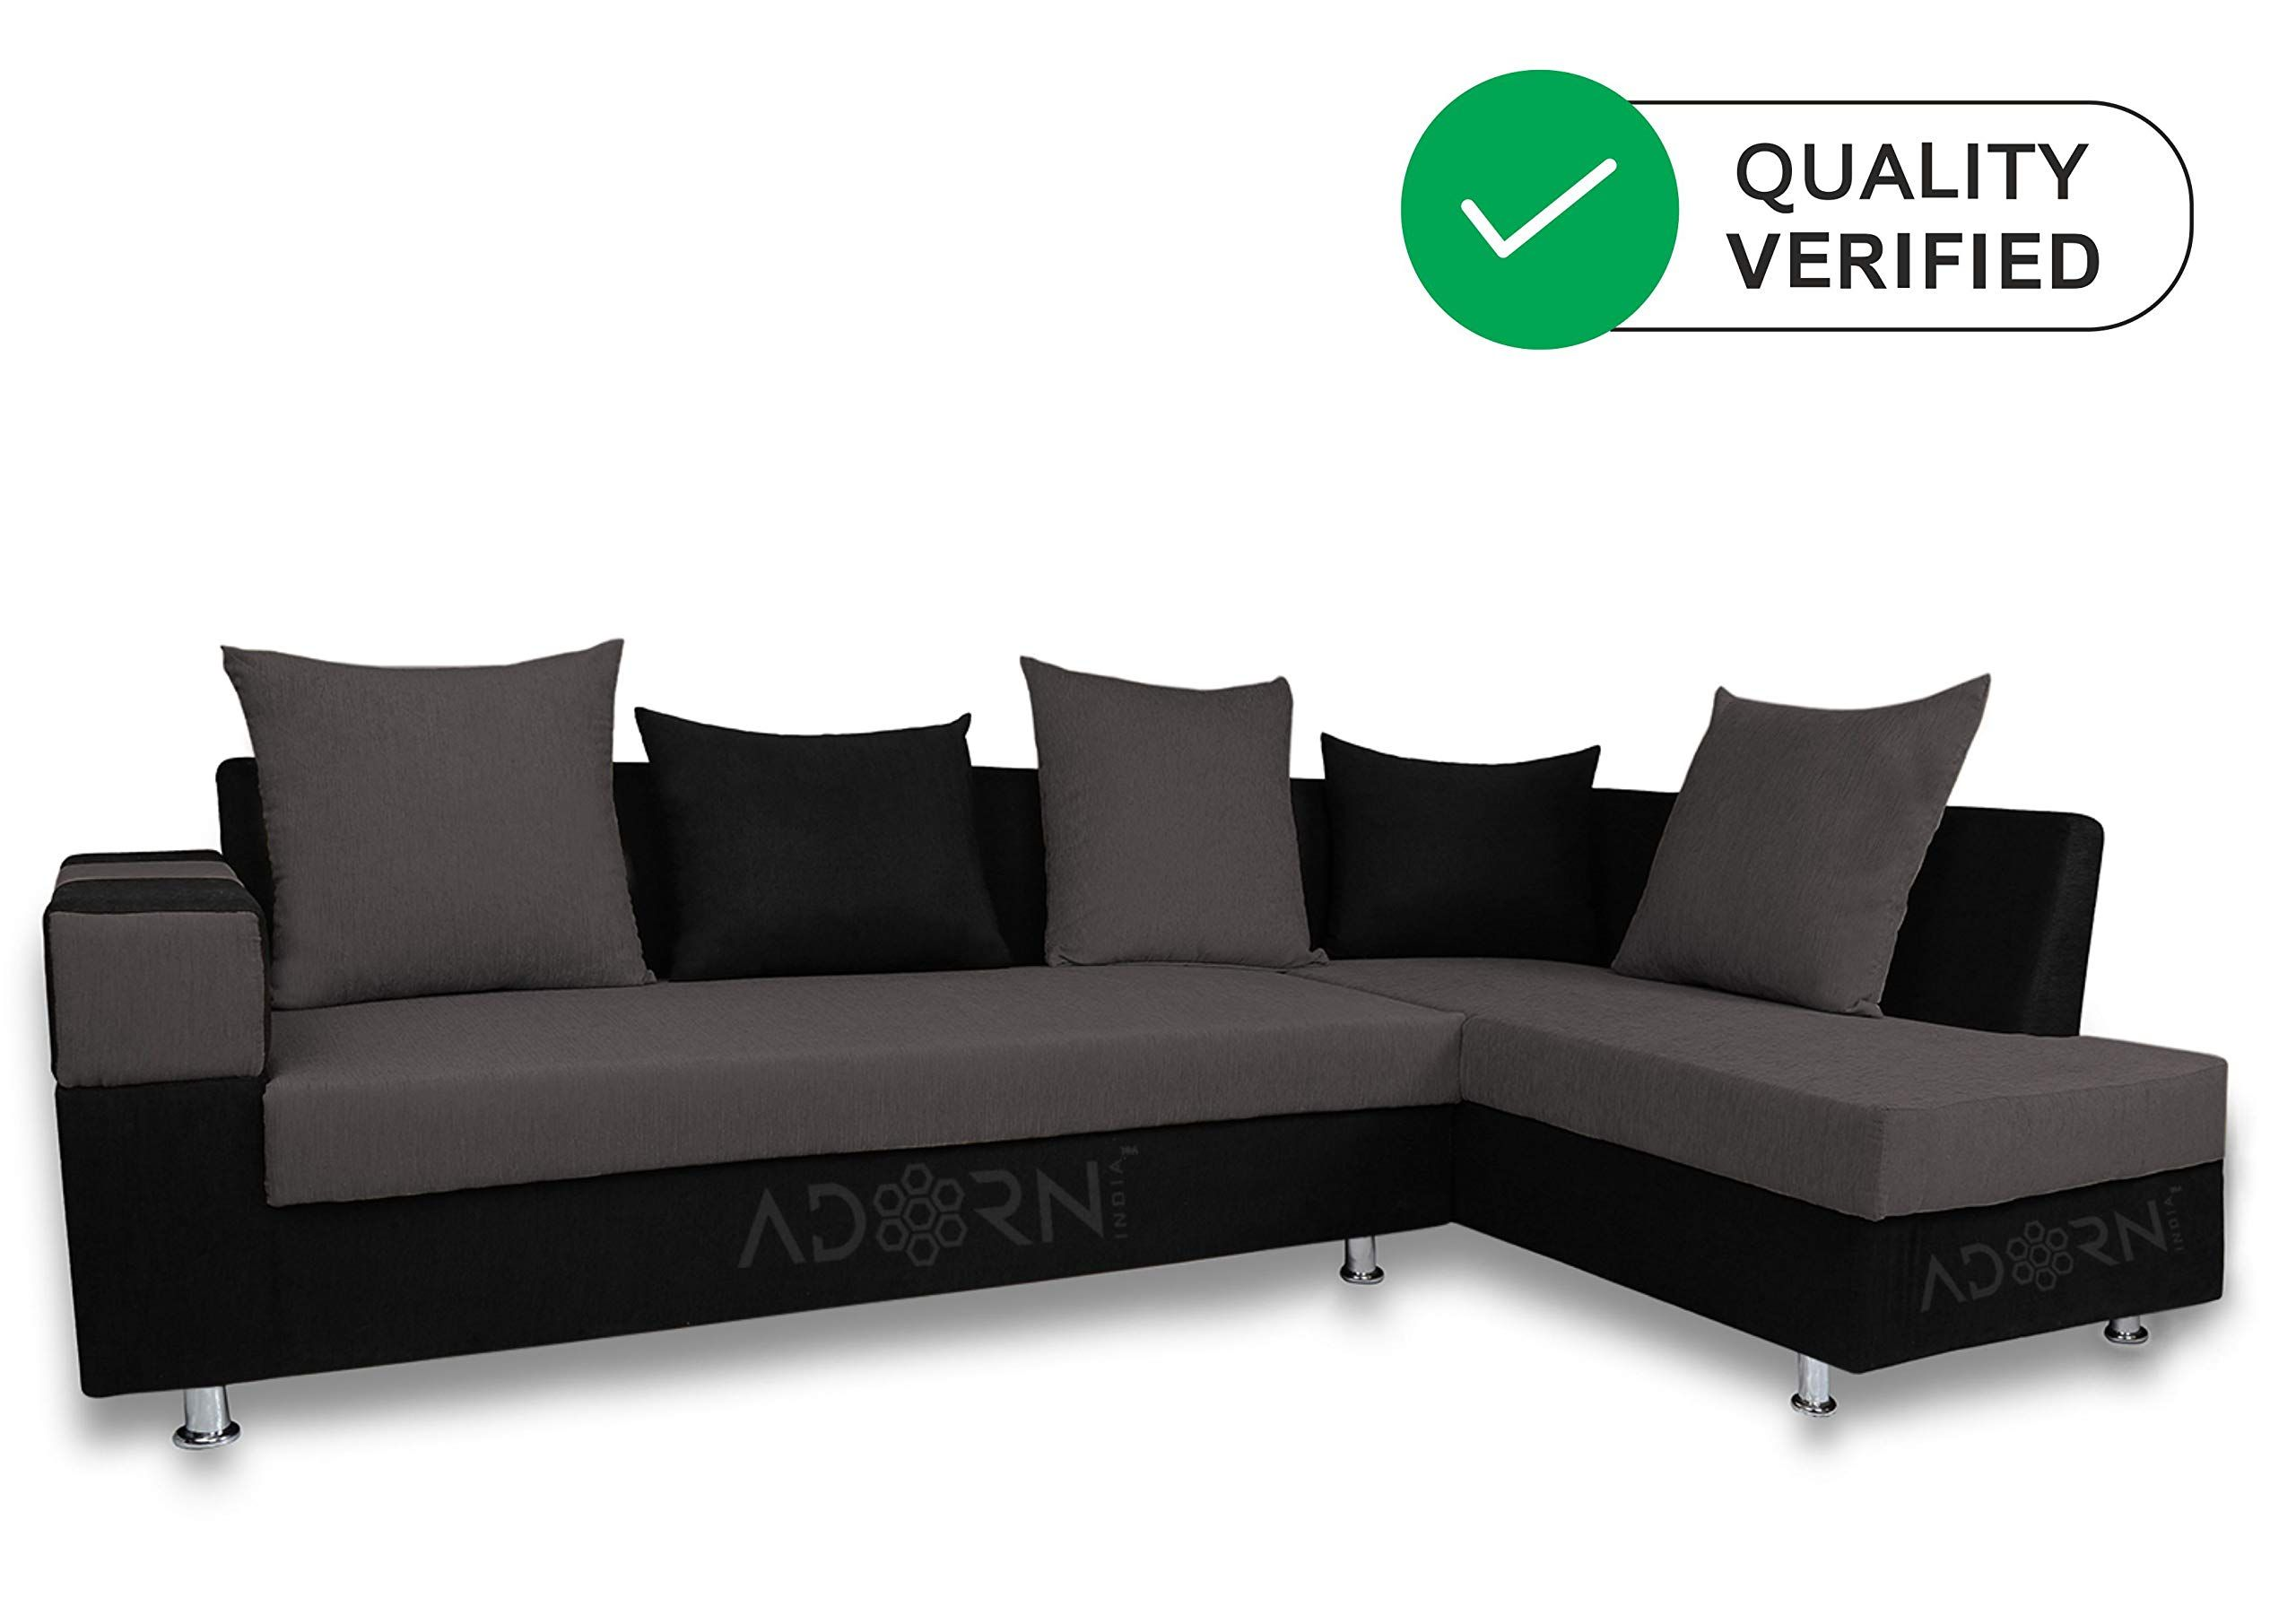 Adorn India Adillac 5 Seater Corner Sofa Right Side Grey Black Amazon In Electronics In 2020 5 Seater Corner Sofa Corner Sofa Seater